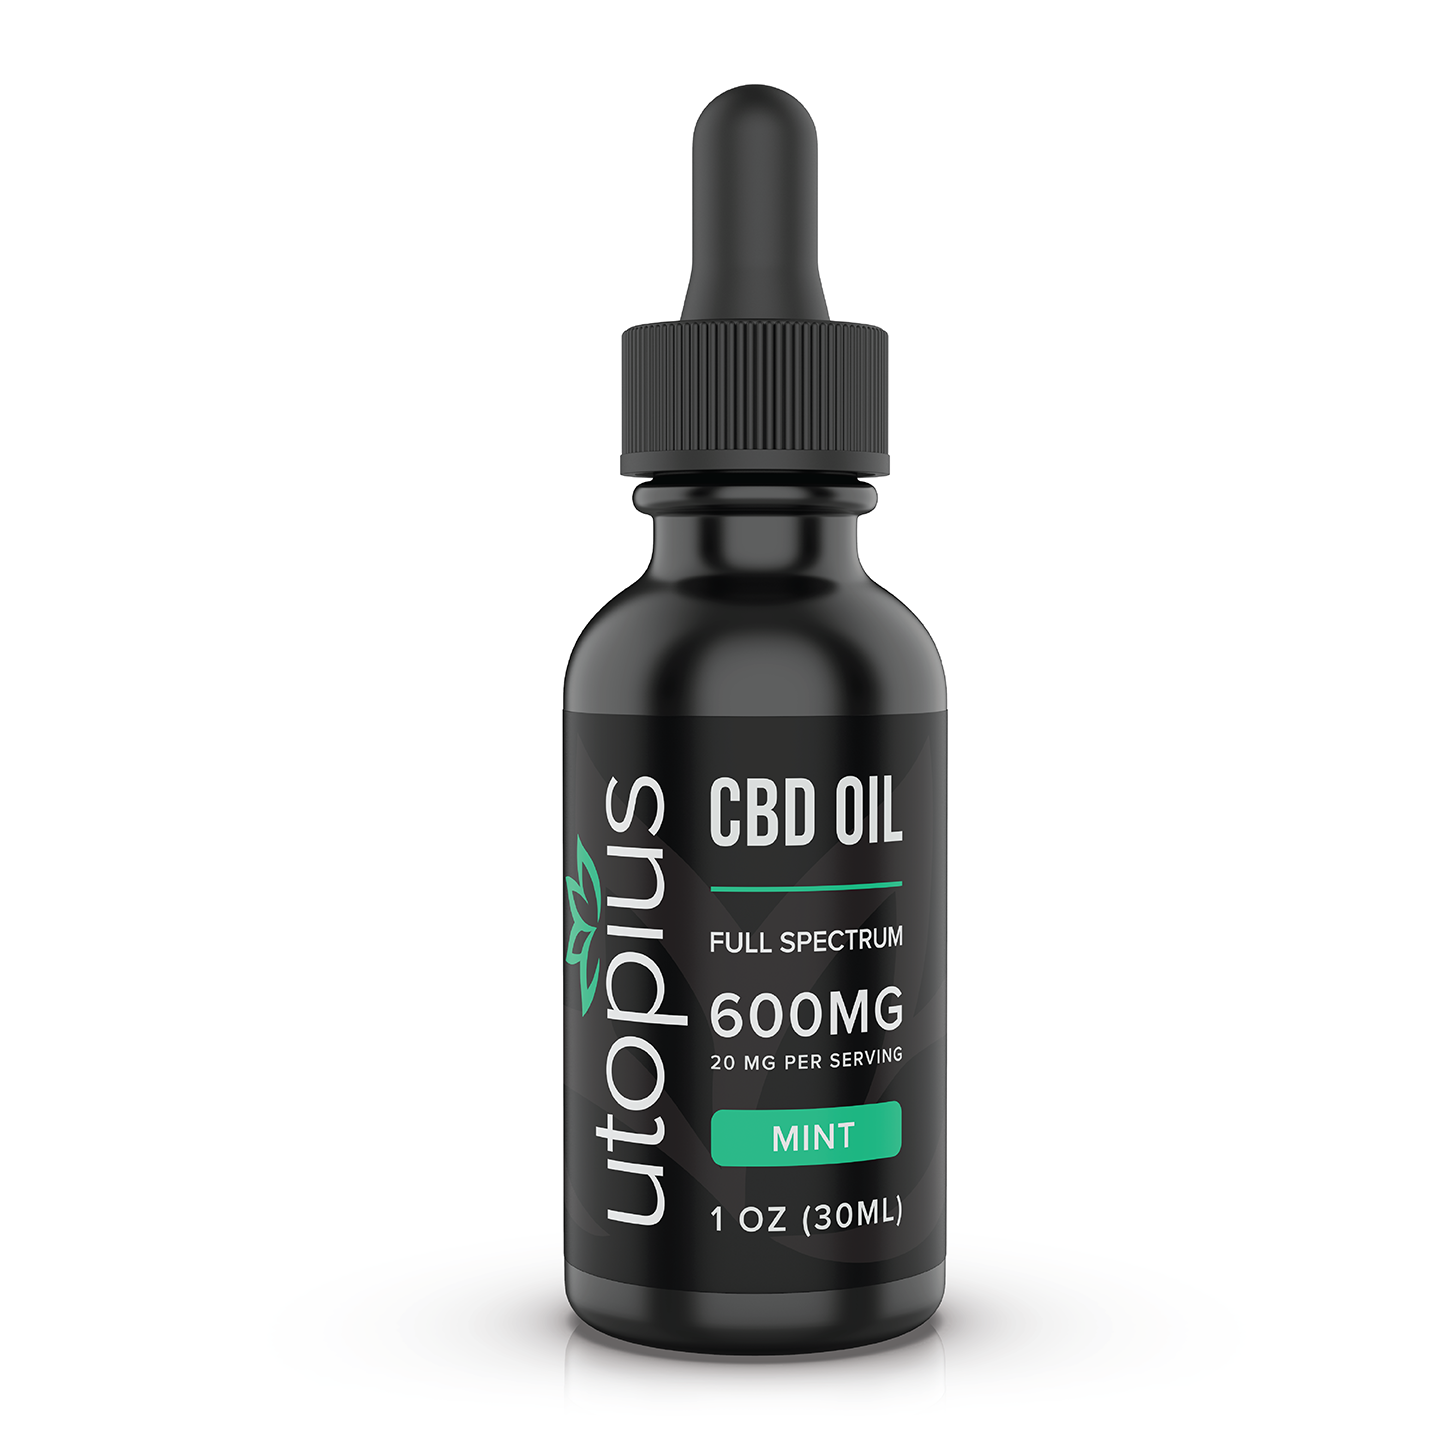 Buy Mint CBD Oil